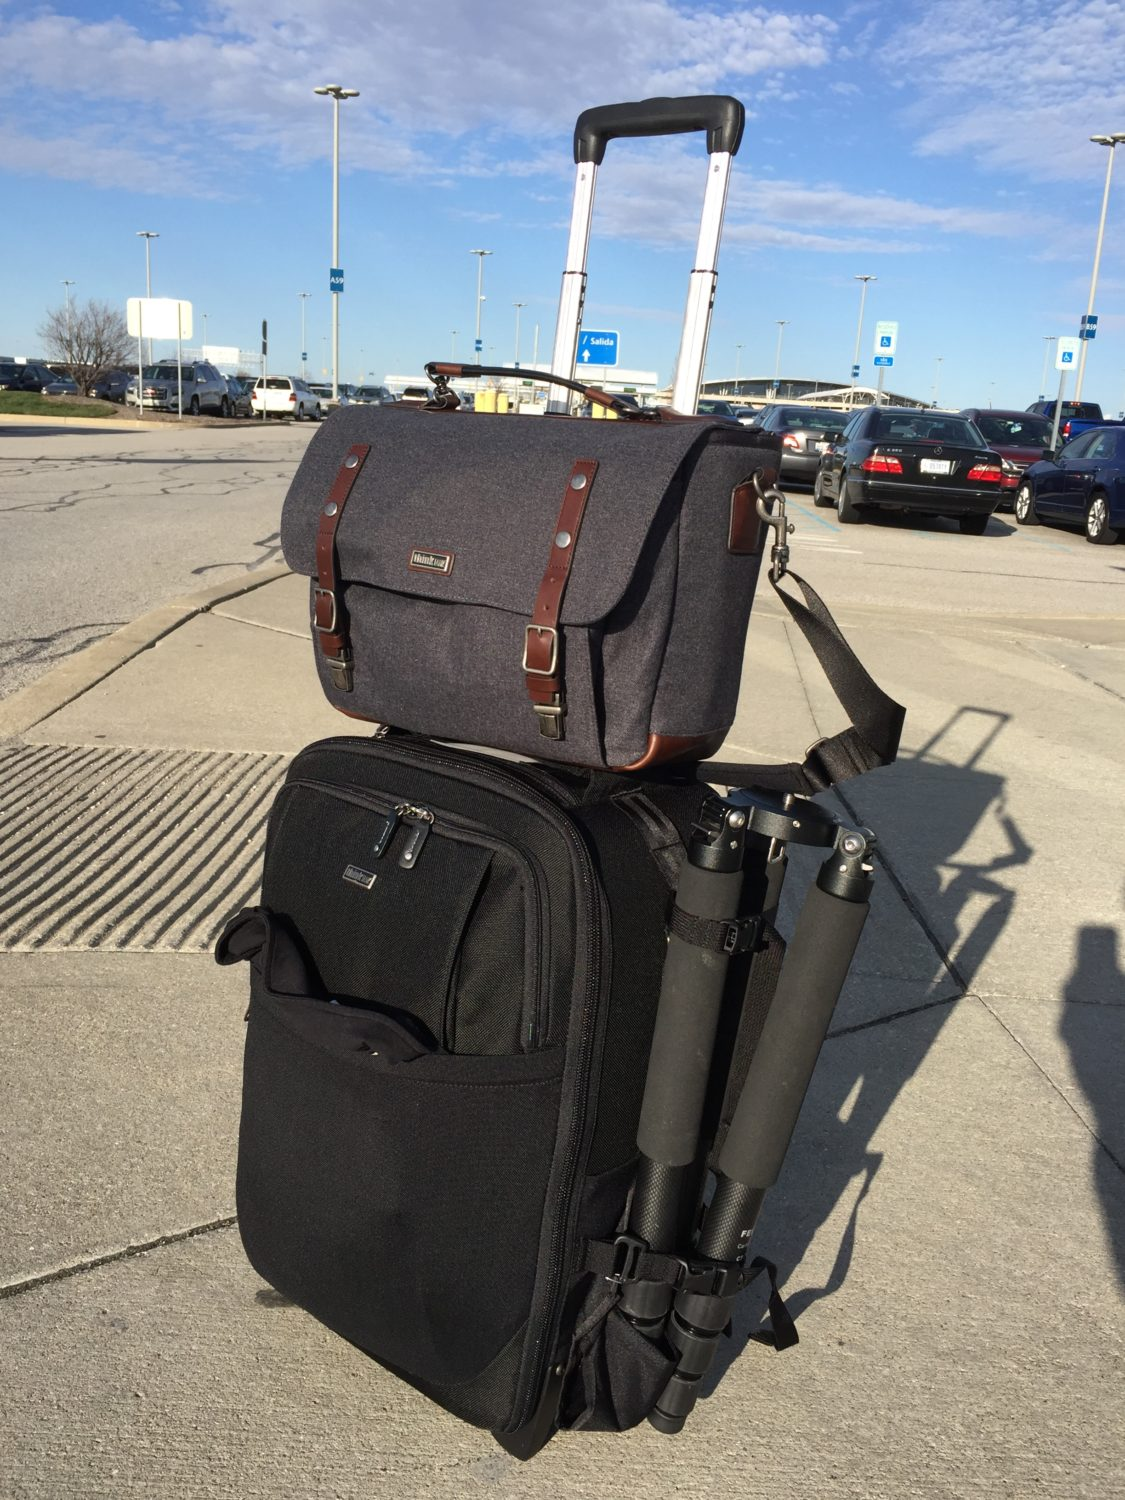 THINK TANK - AIRPORT TAKEOFF V2.0 Bag Review - Improve Photography